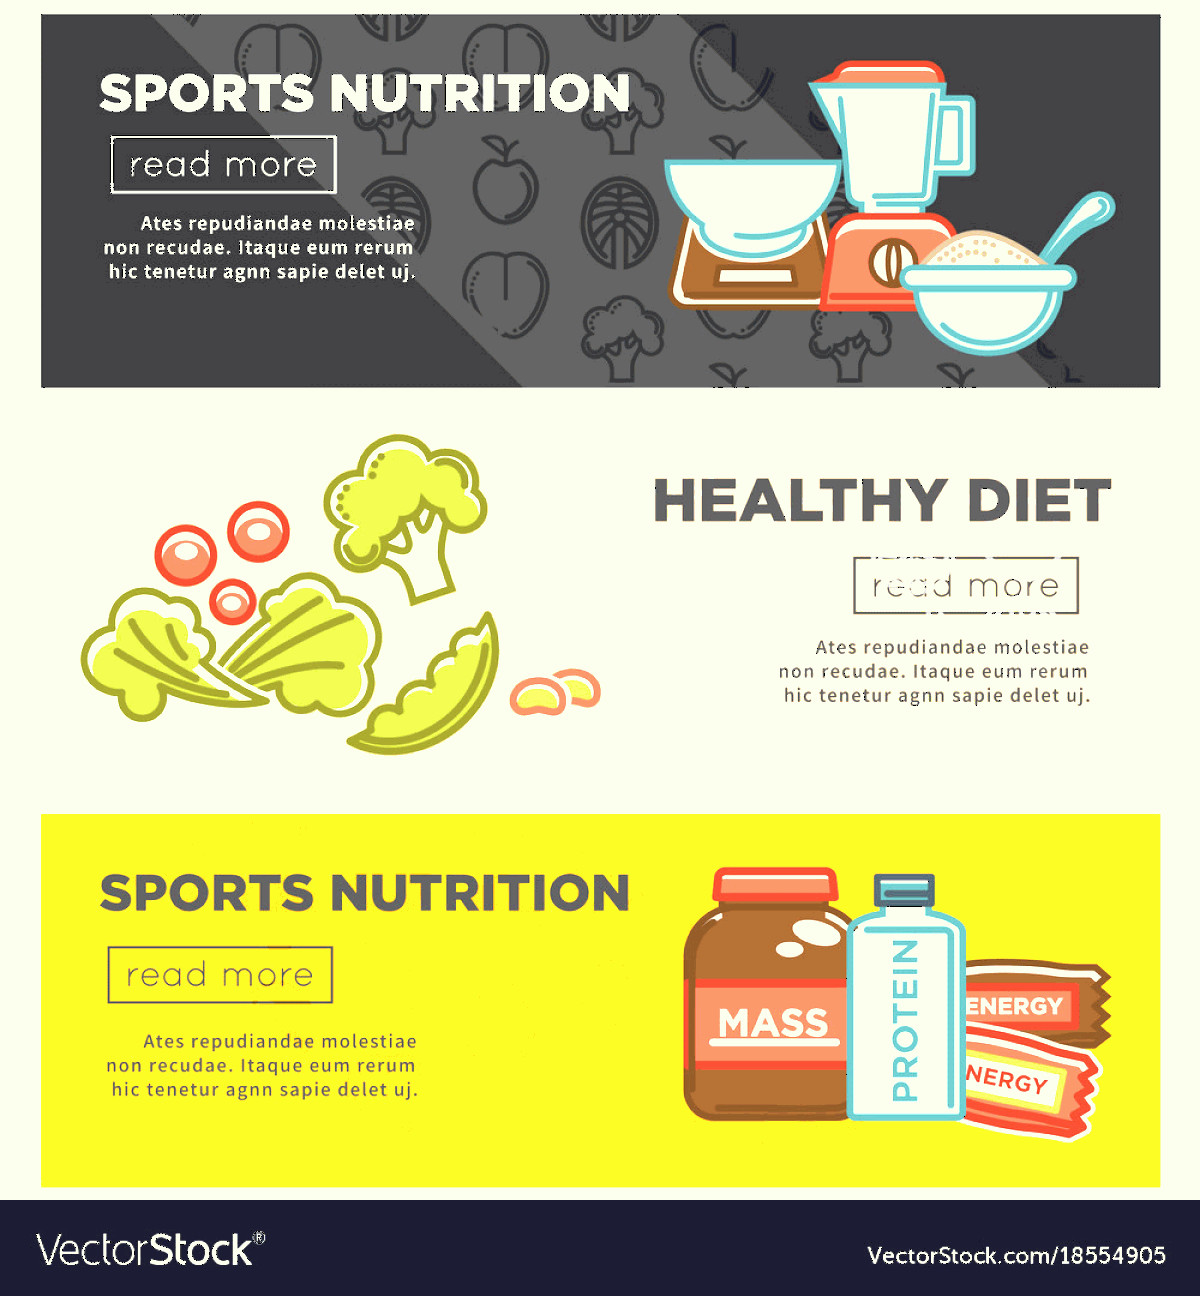 Vector Cereal Nutrition: Fitness Food And Sports Healthy Diet Nutrition Vector